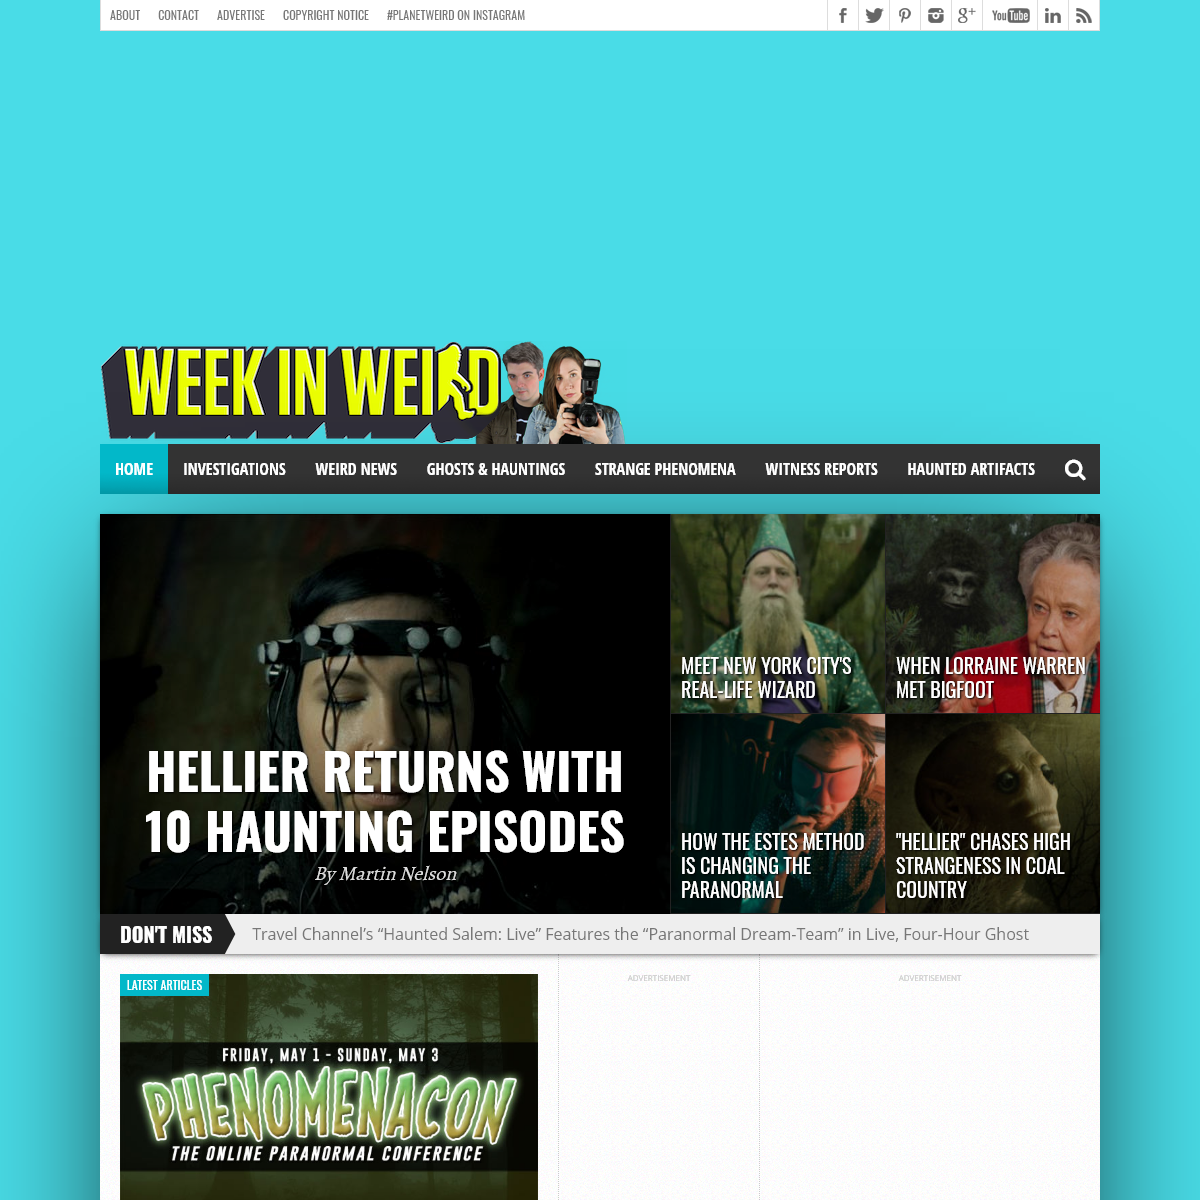 Week in Weird- Paranormal News, Reviews, and Adventures in the Unexplained